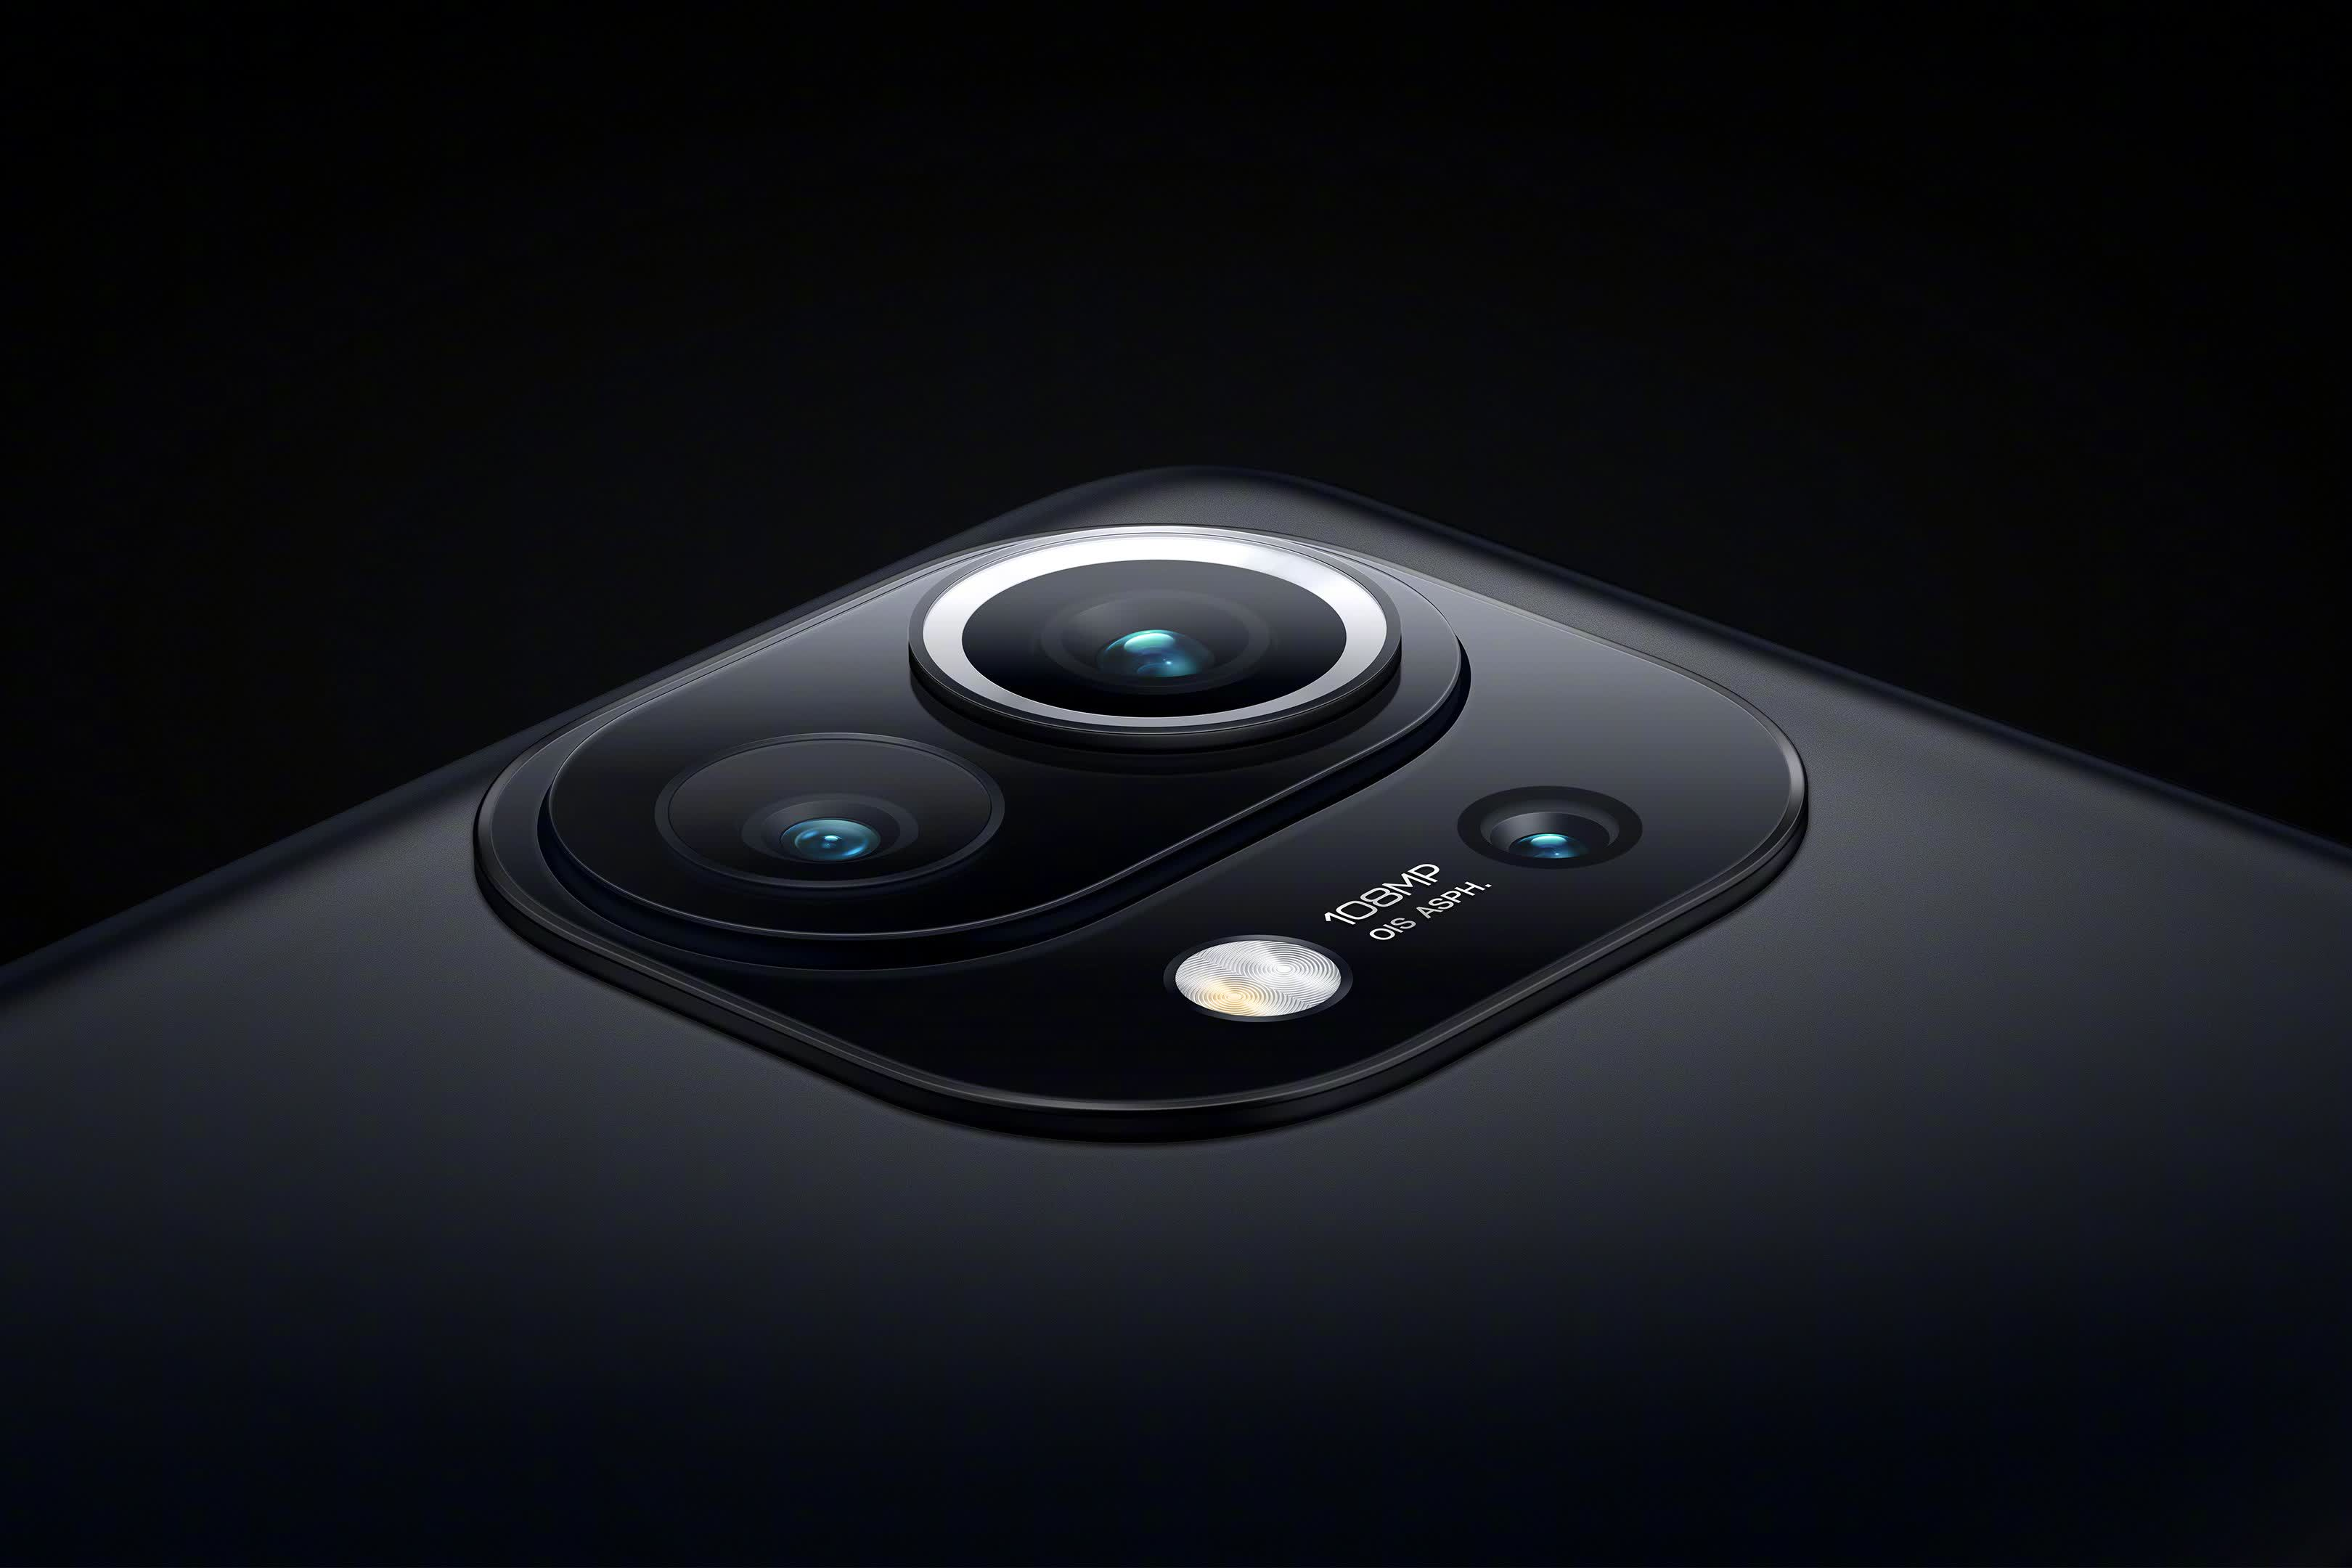 Xiaomi patent reveals an under-display rotating camera for selfies and rear-facing photography